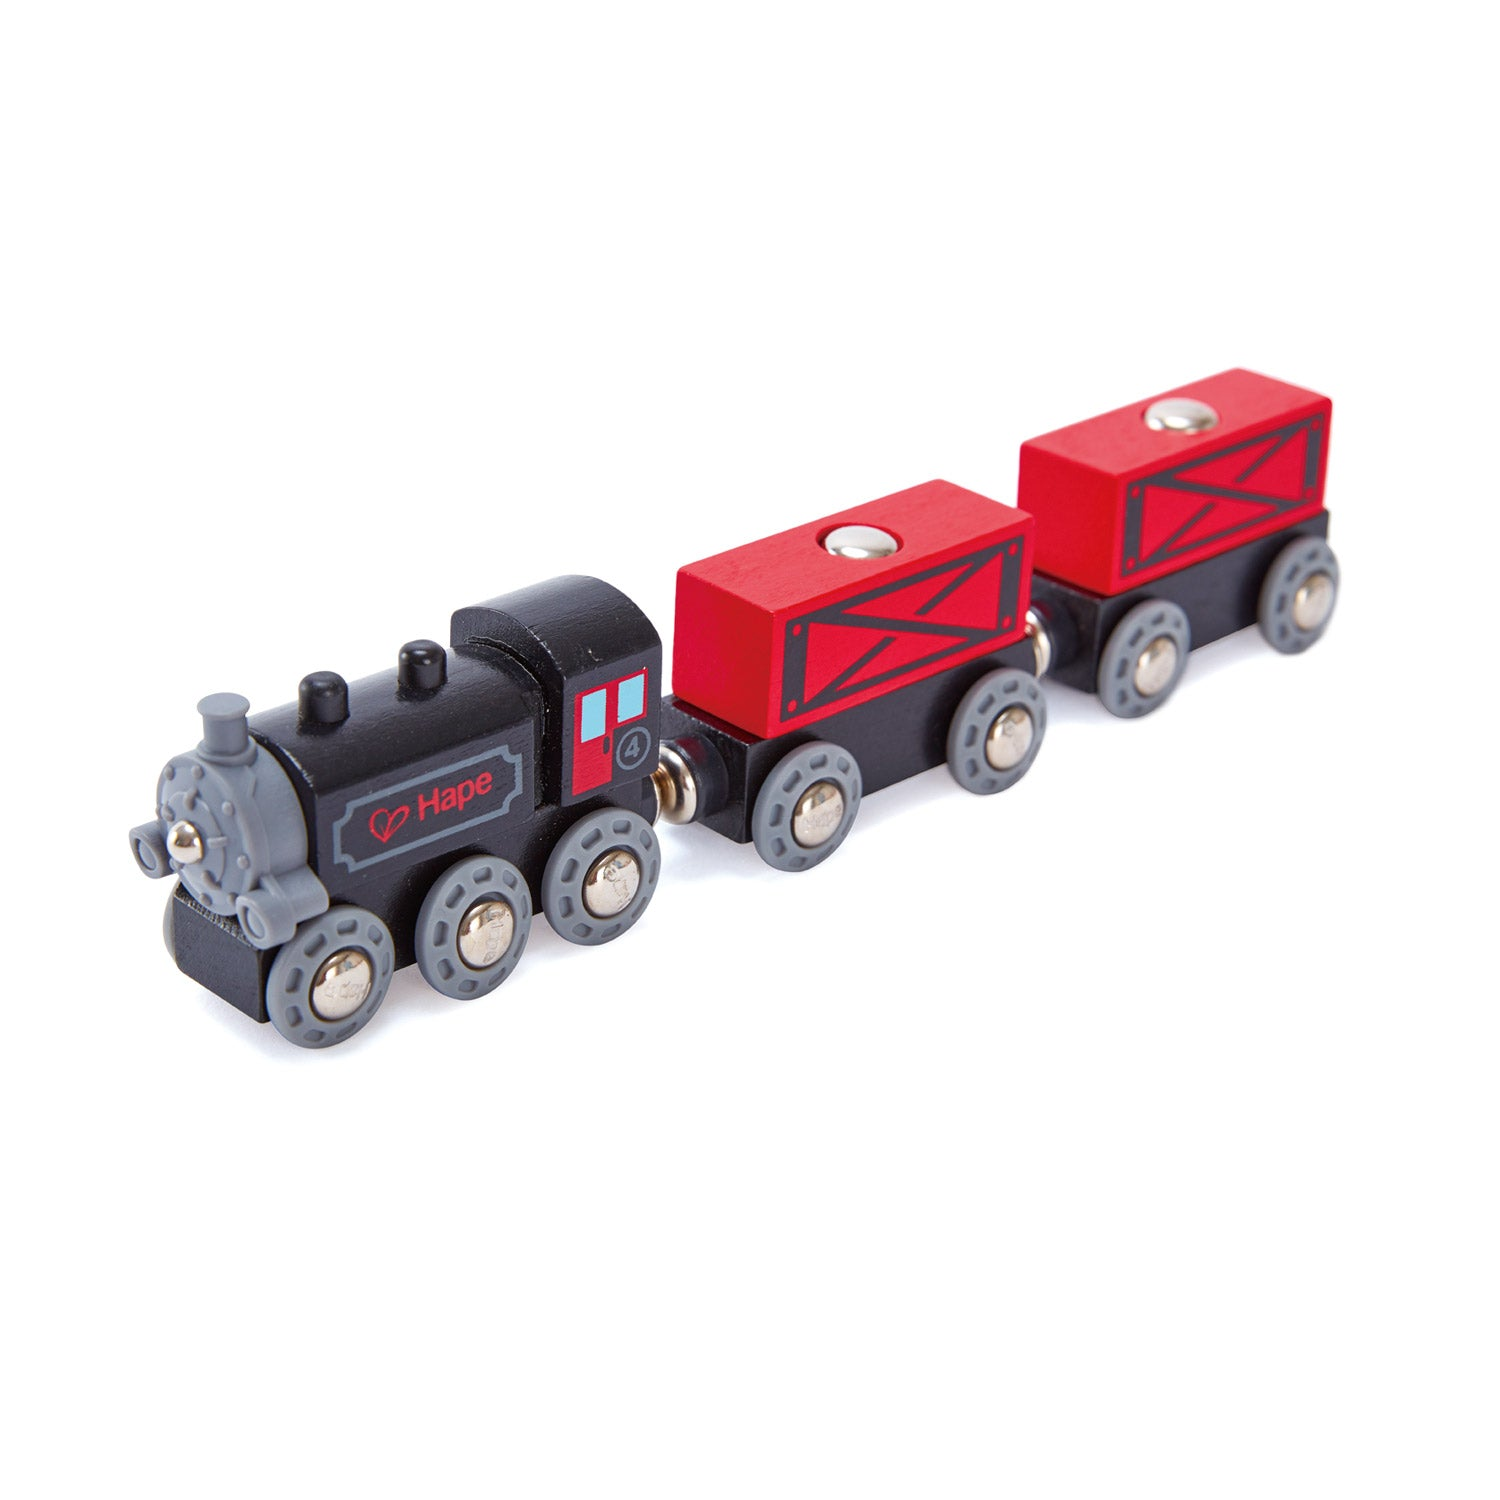 Hape Trains -Steam-Era Freight Train